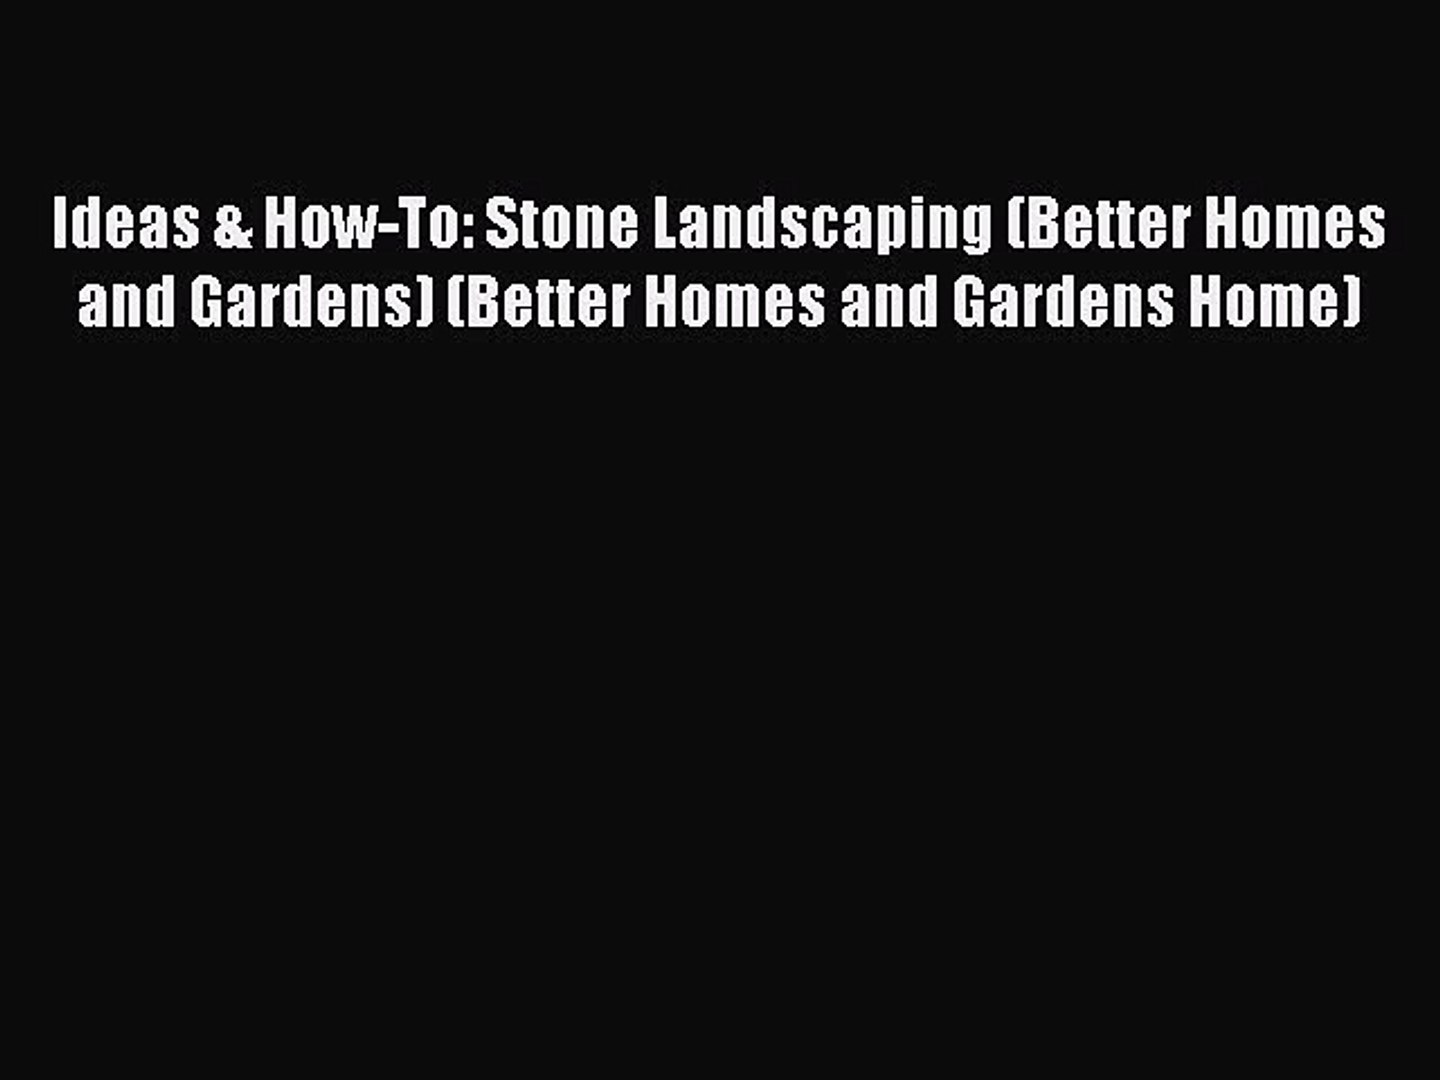 Read Ideas & How-To: Stone Landscaping (Better Homes and Gardens) (Better Homes and Gardens